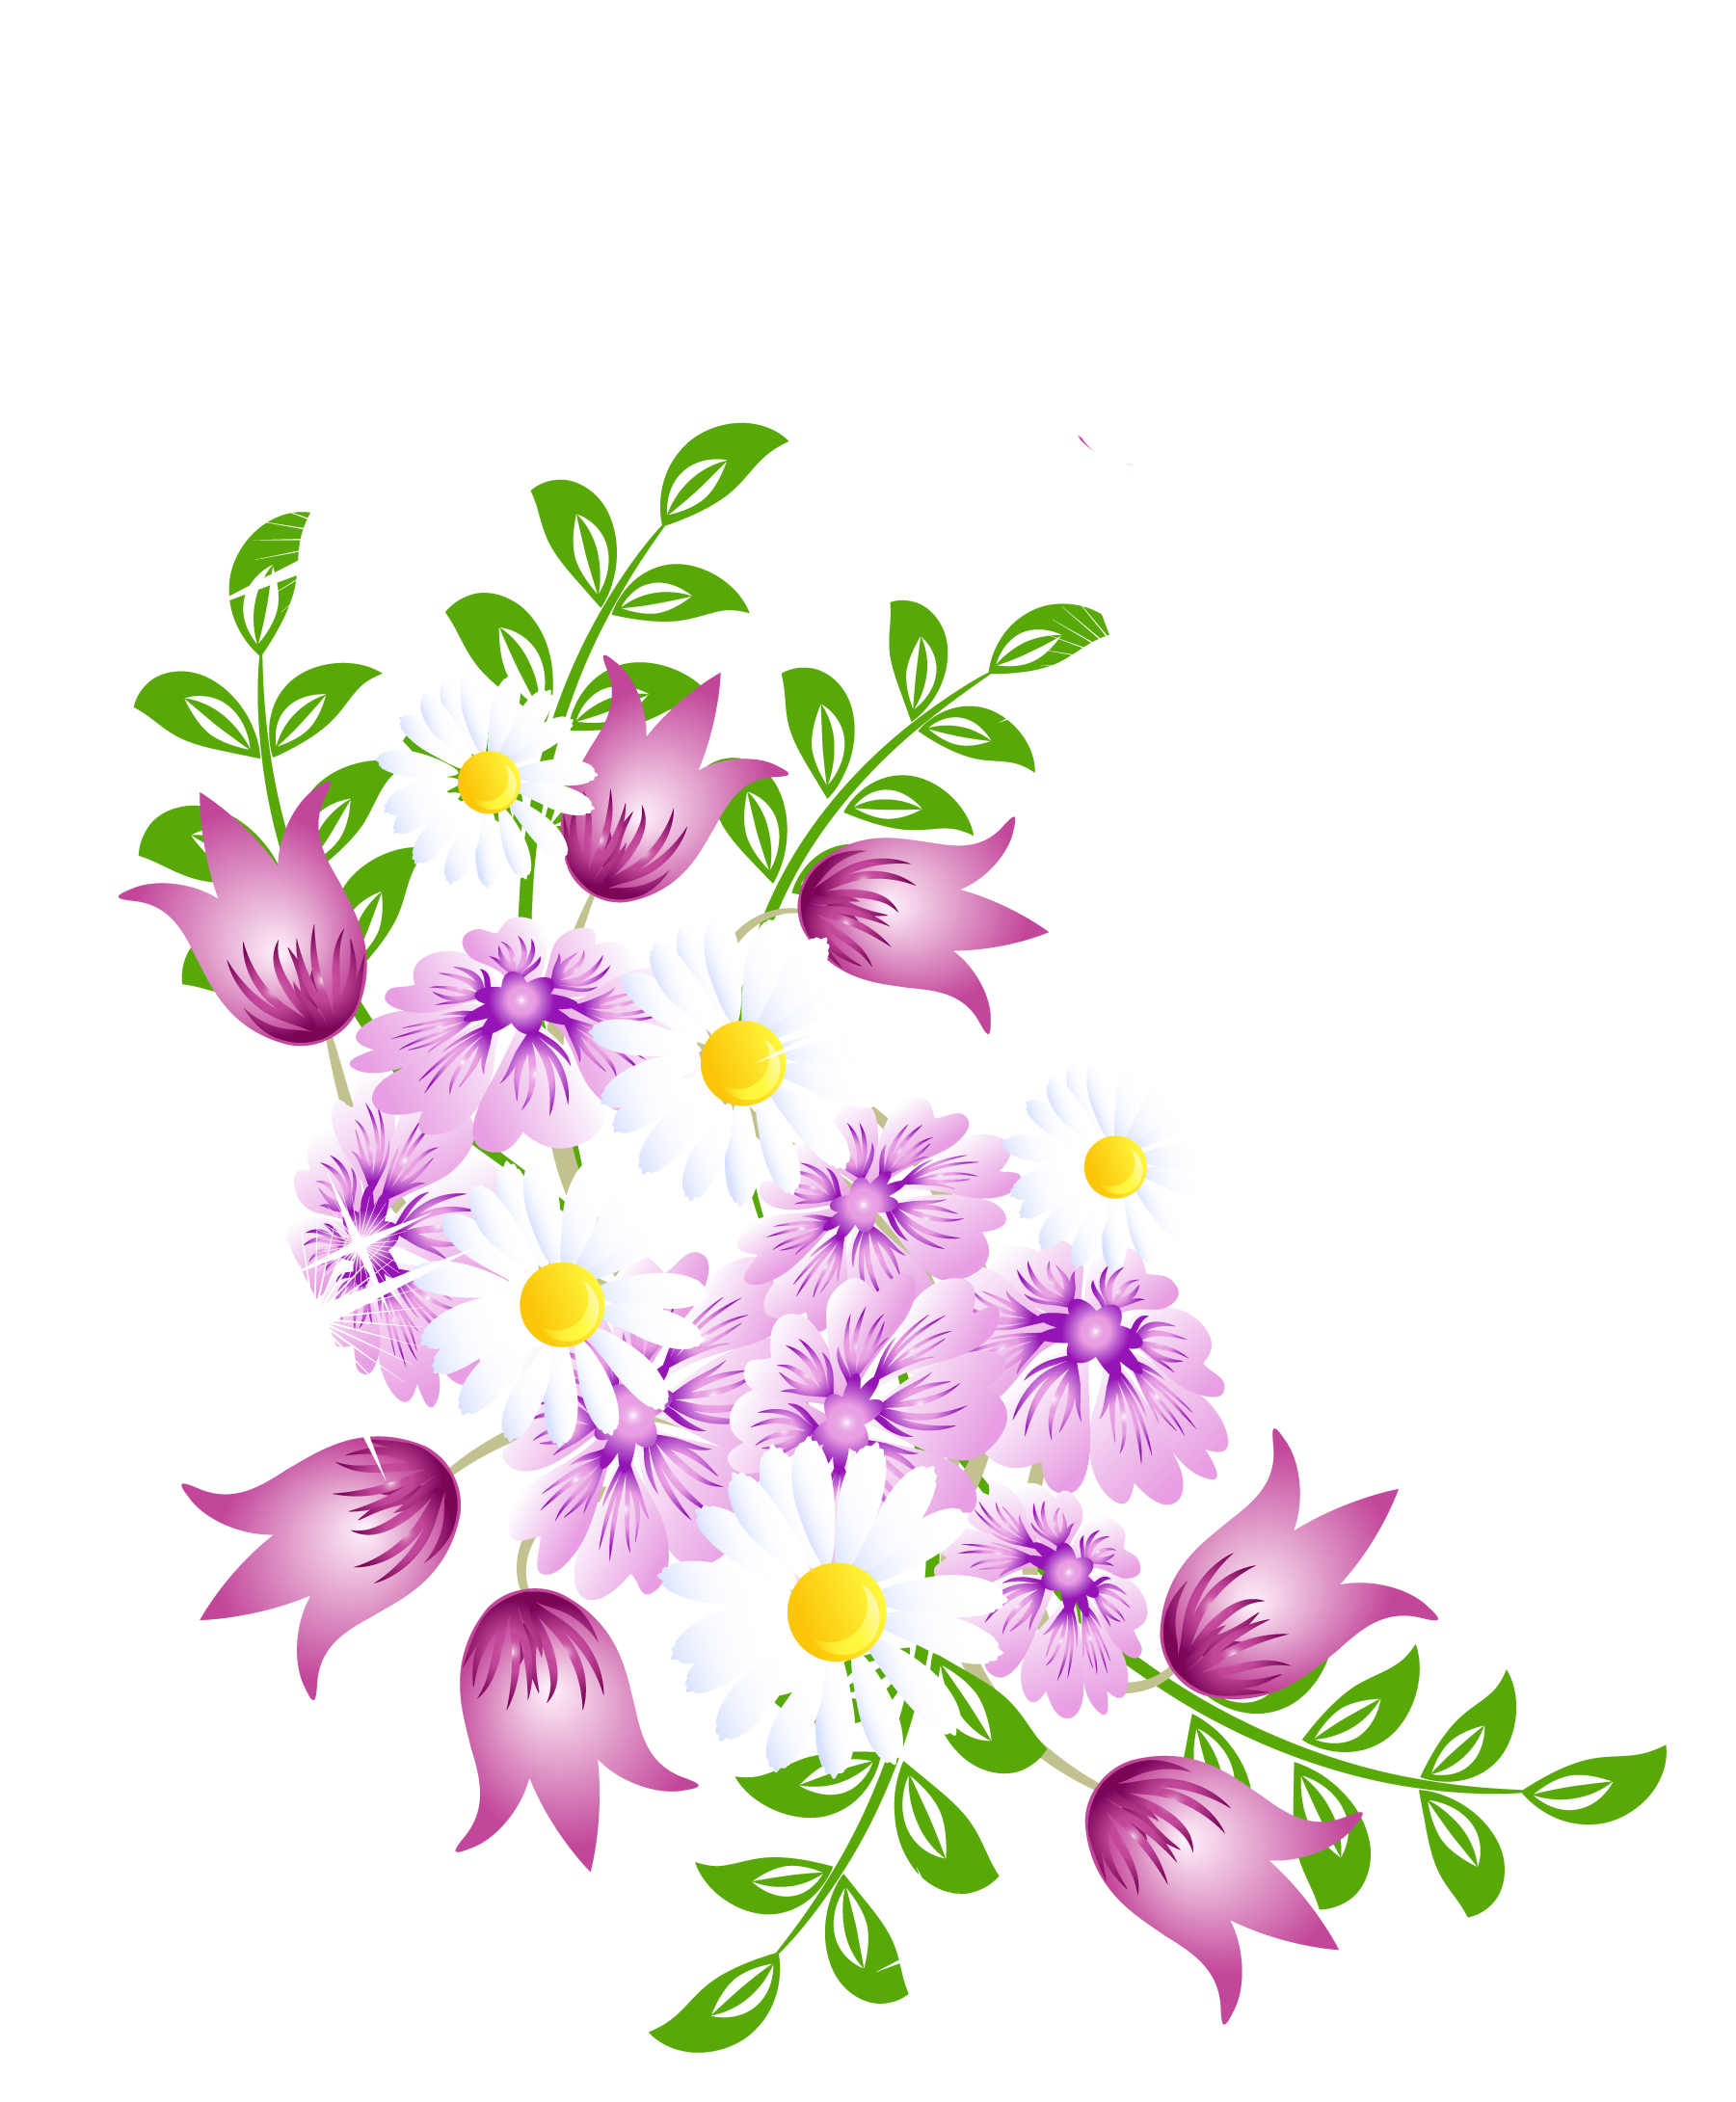 Spring flowers spring flower clipart free clipartfest 3.